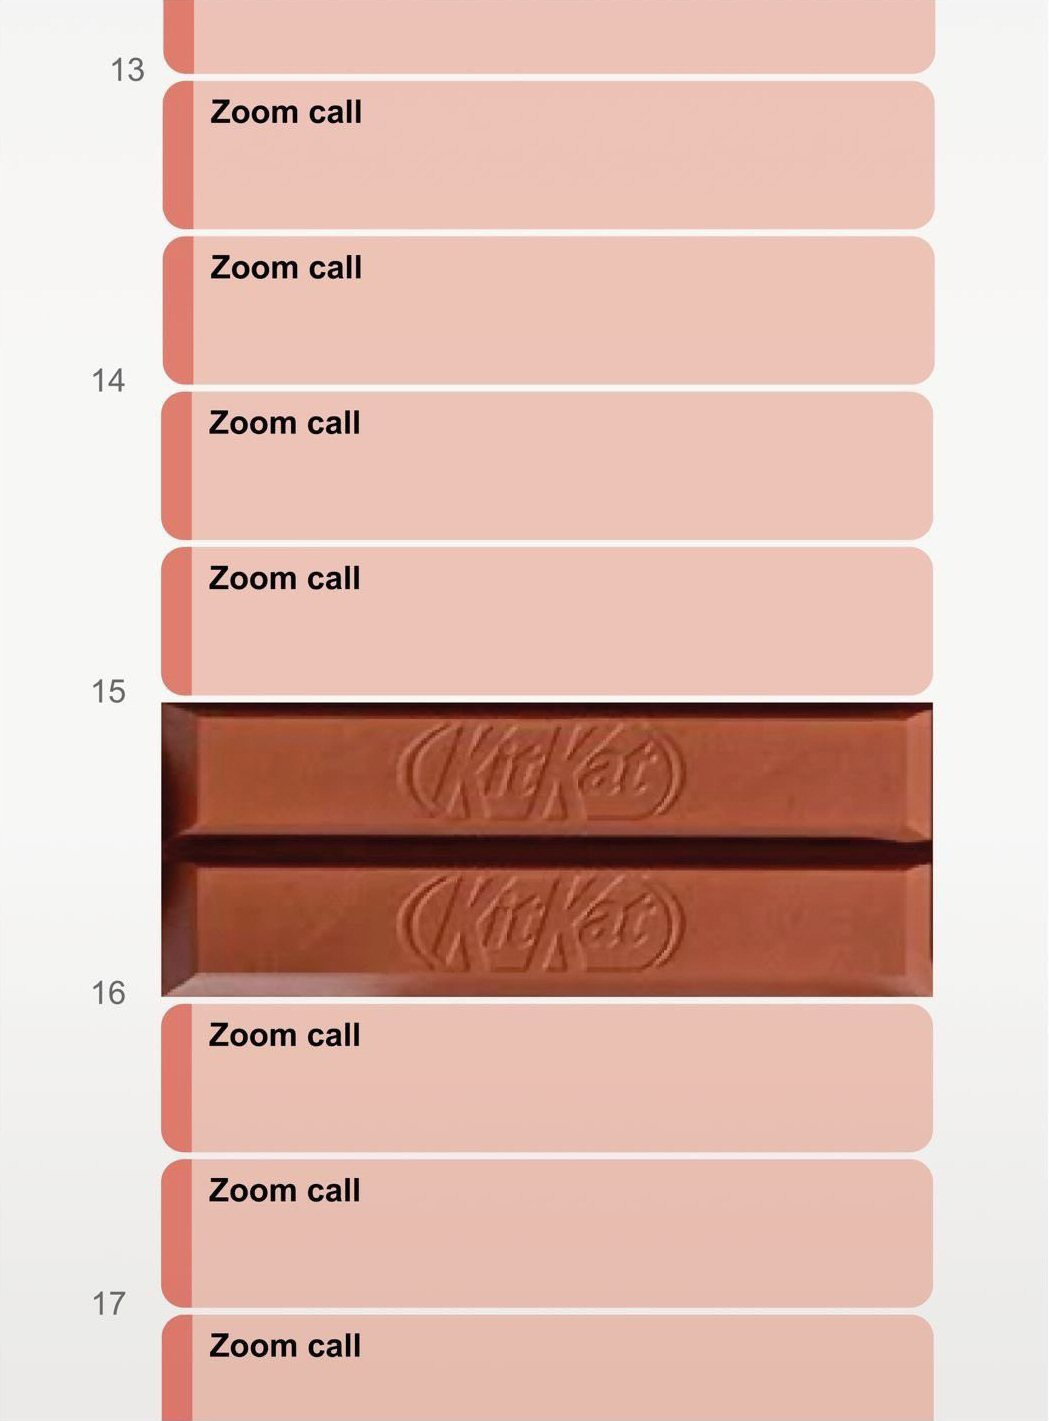 KitKat new norm content